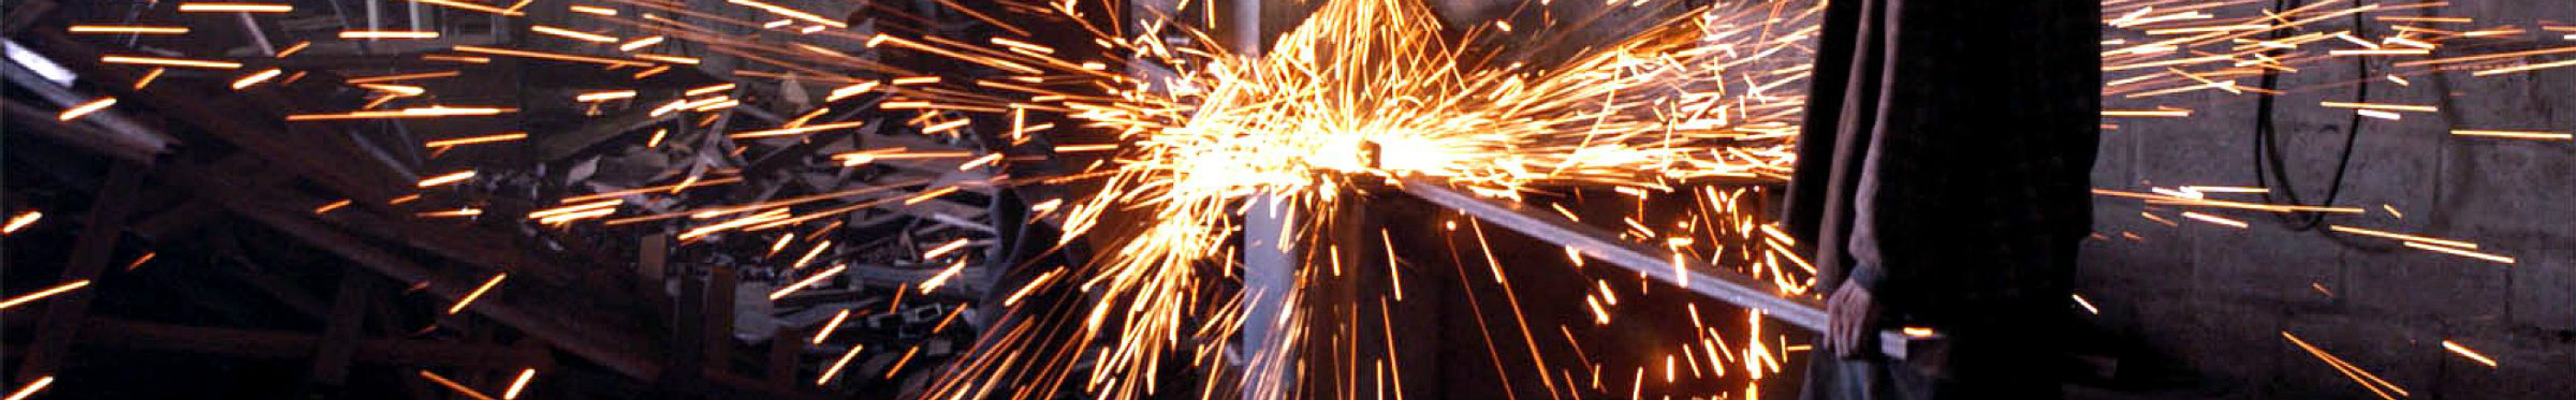 sparks in metal factory